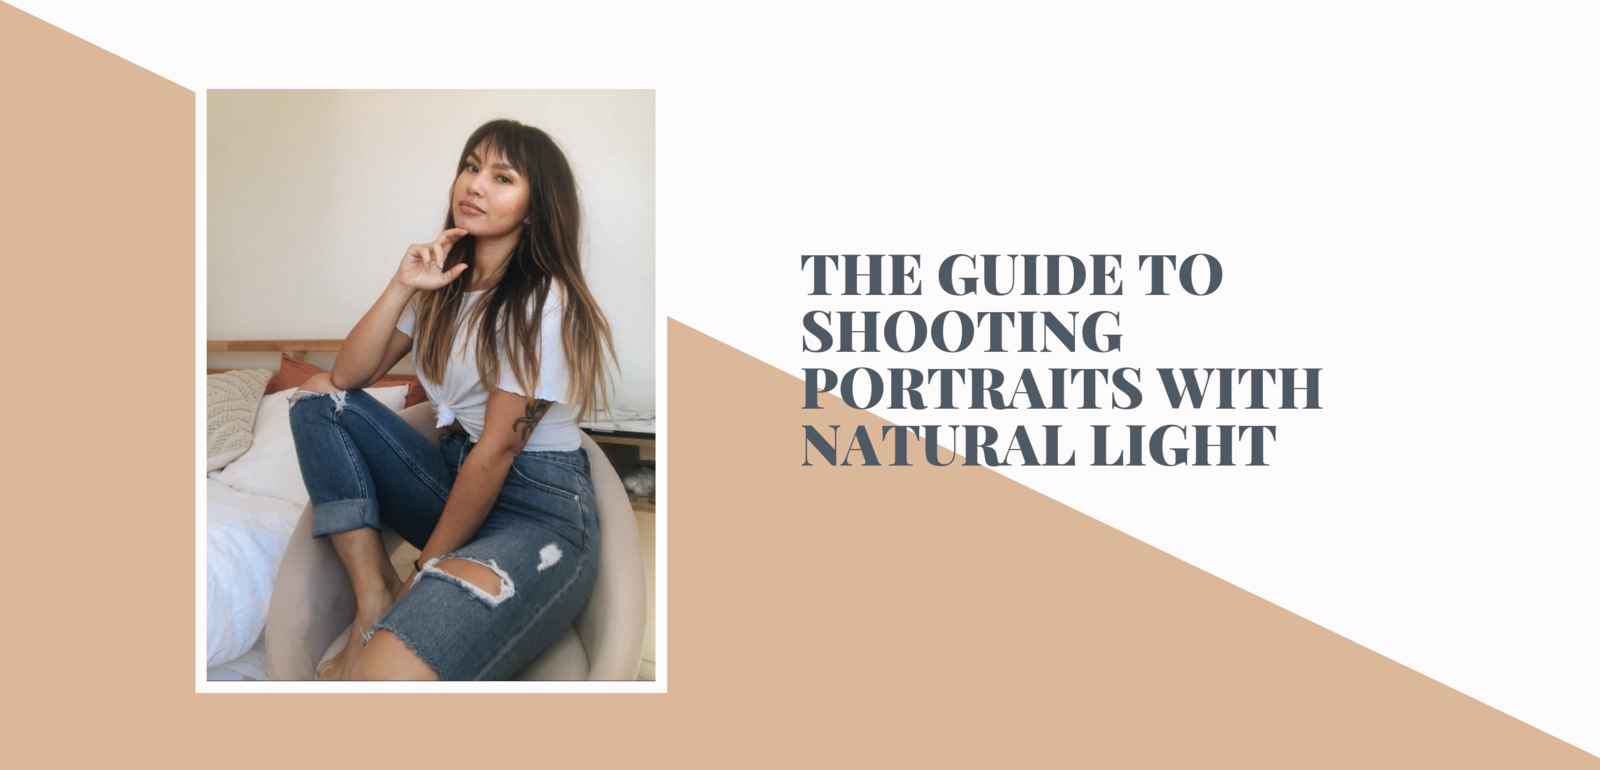 The guide to shooting portraits